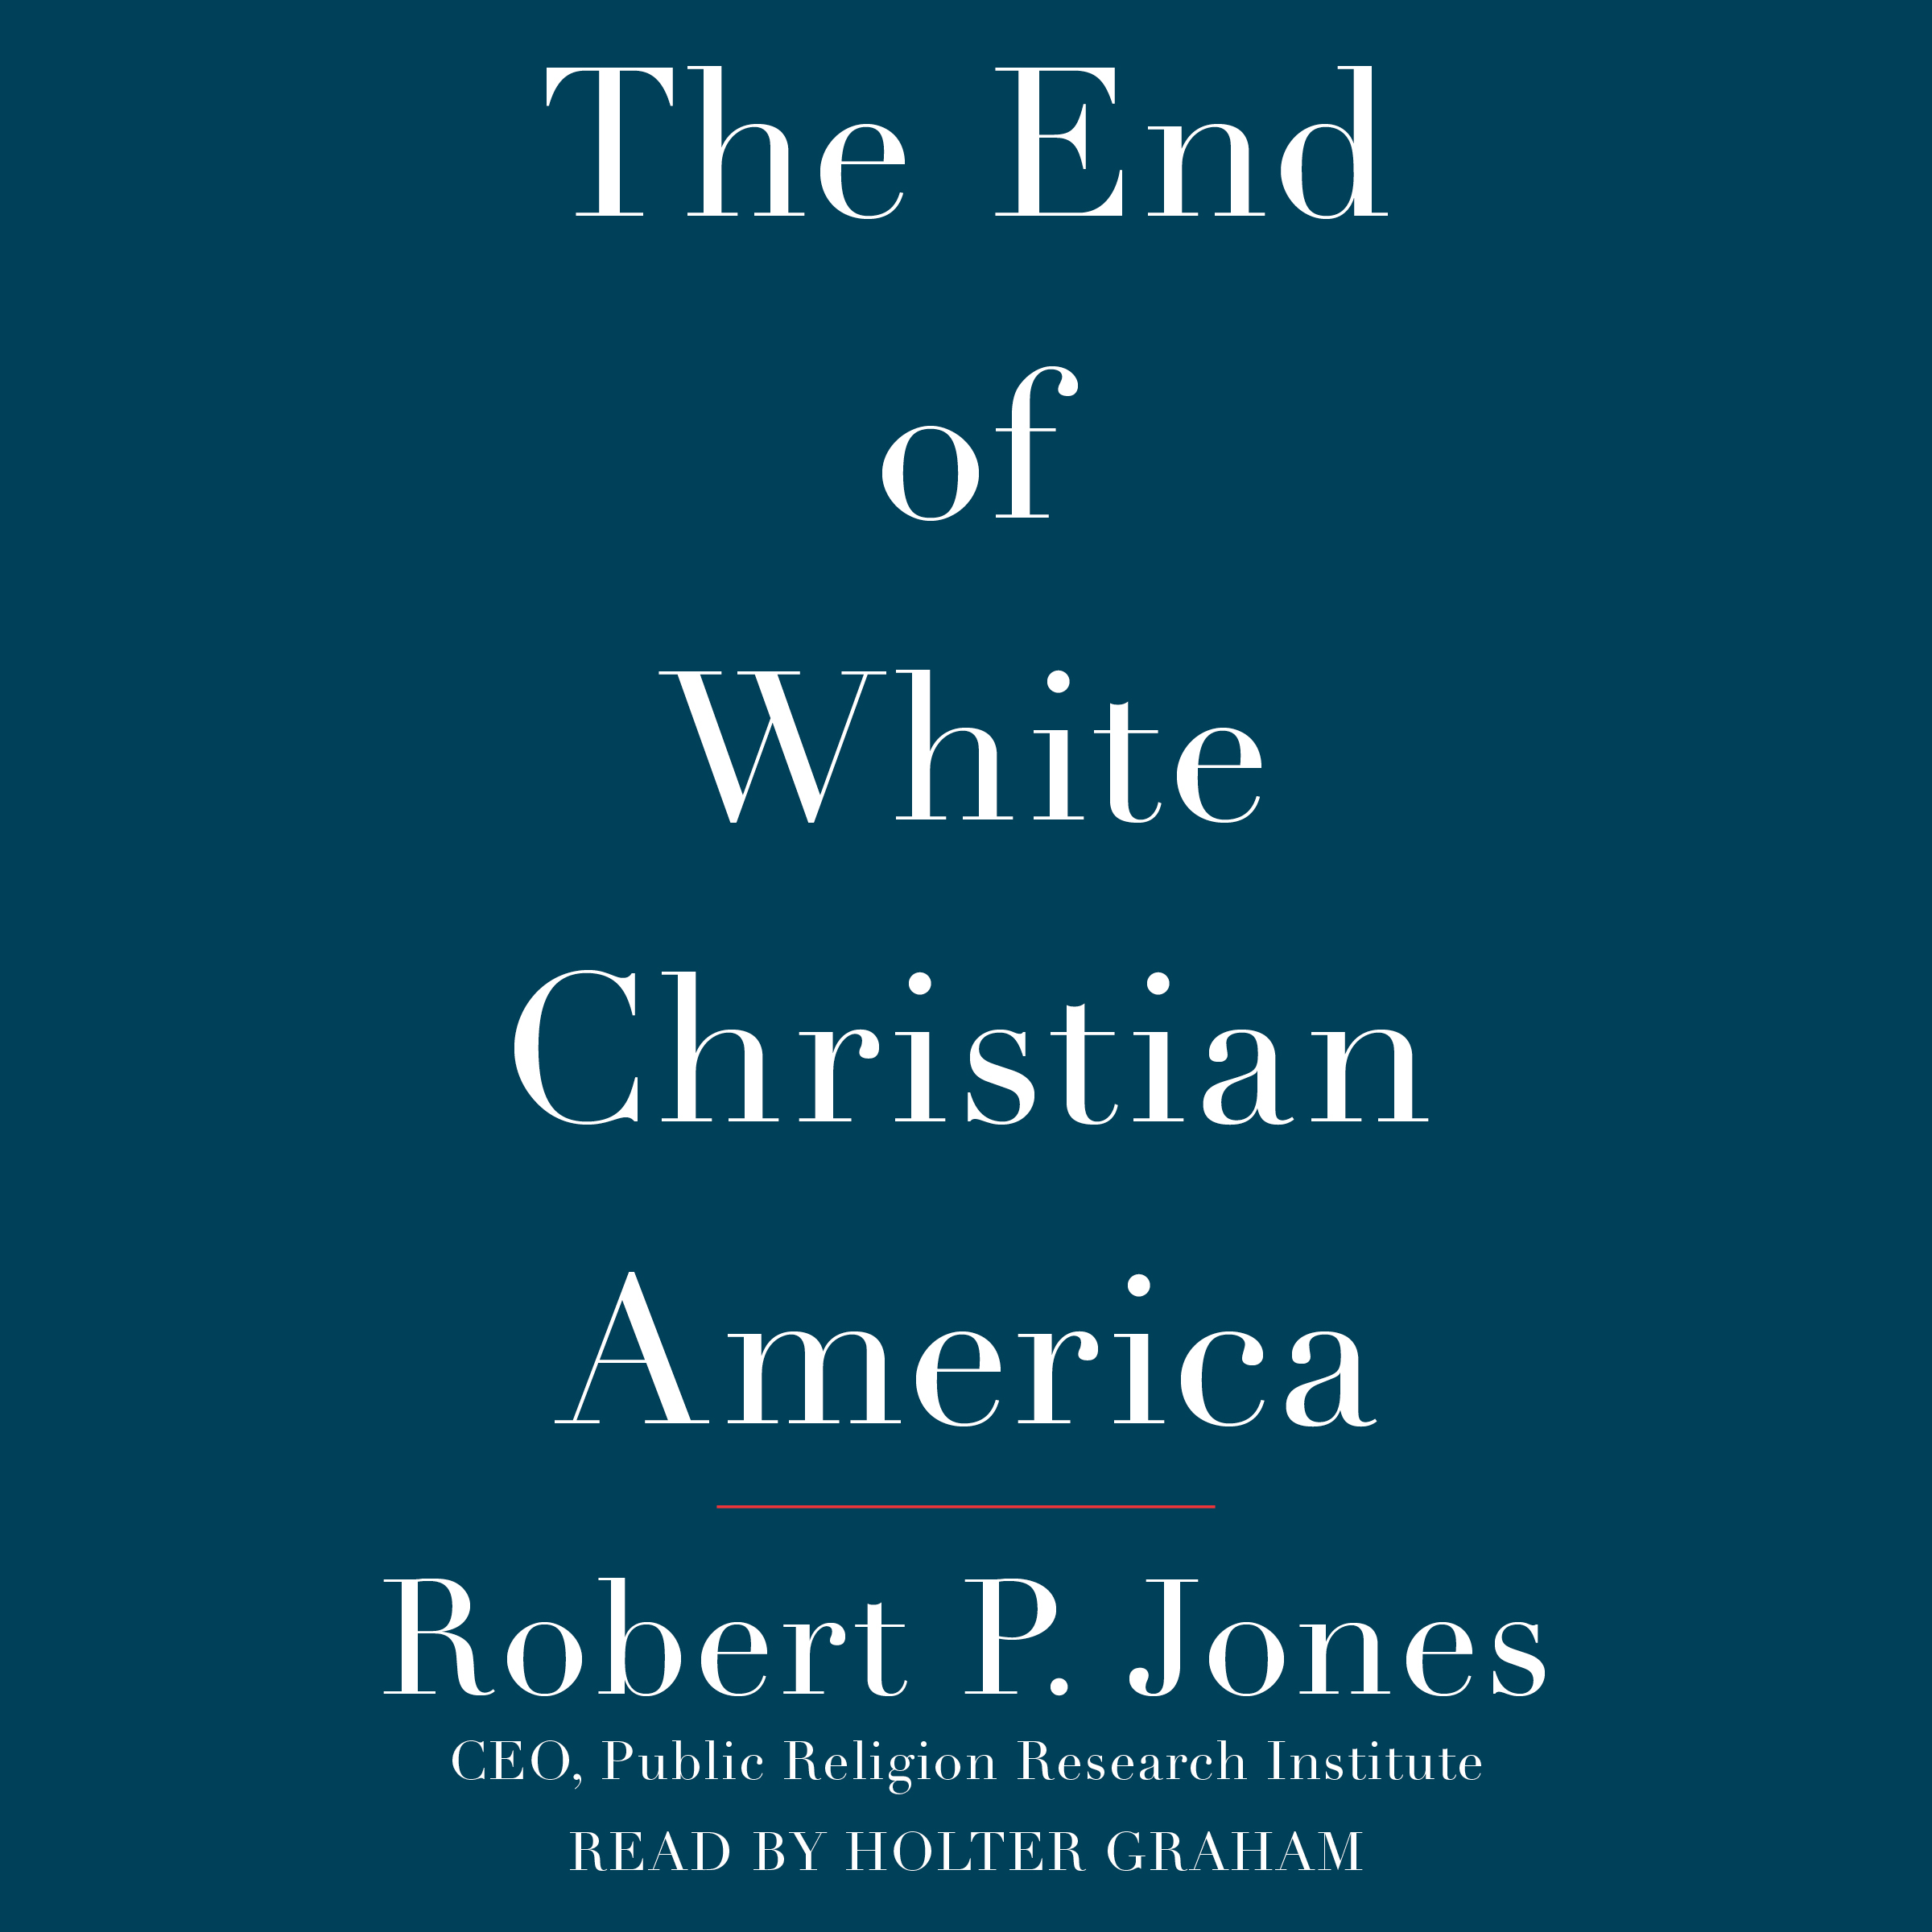 The end of white christian america 9781508228332 hr